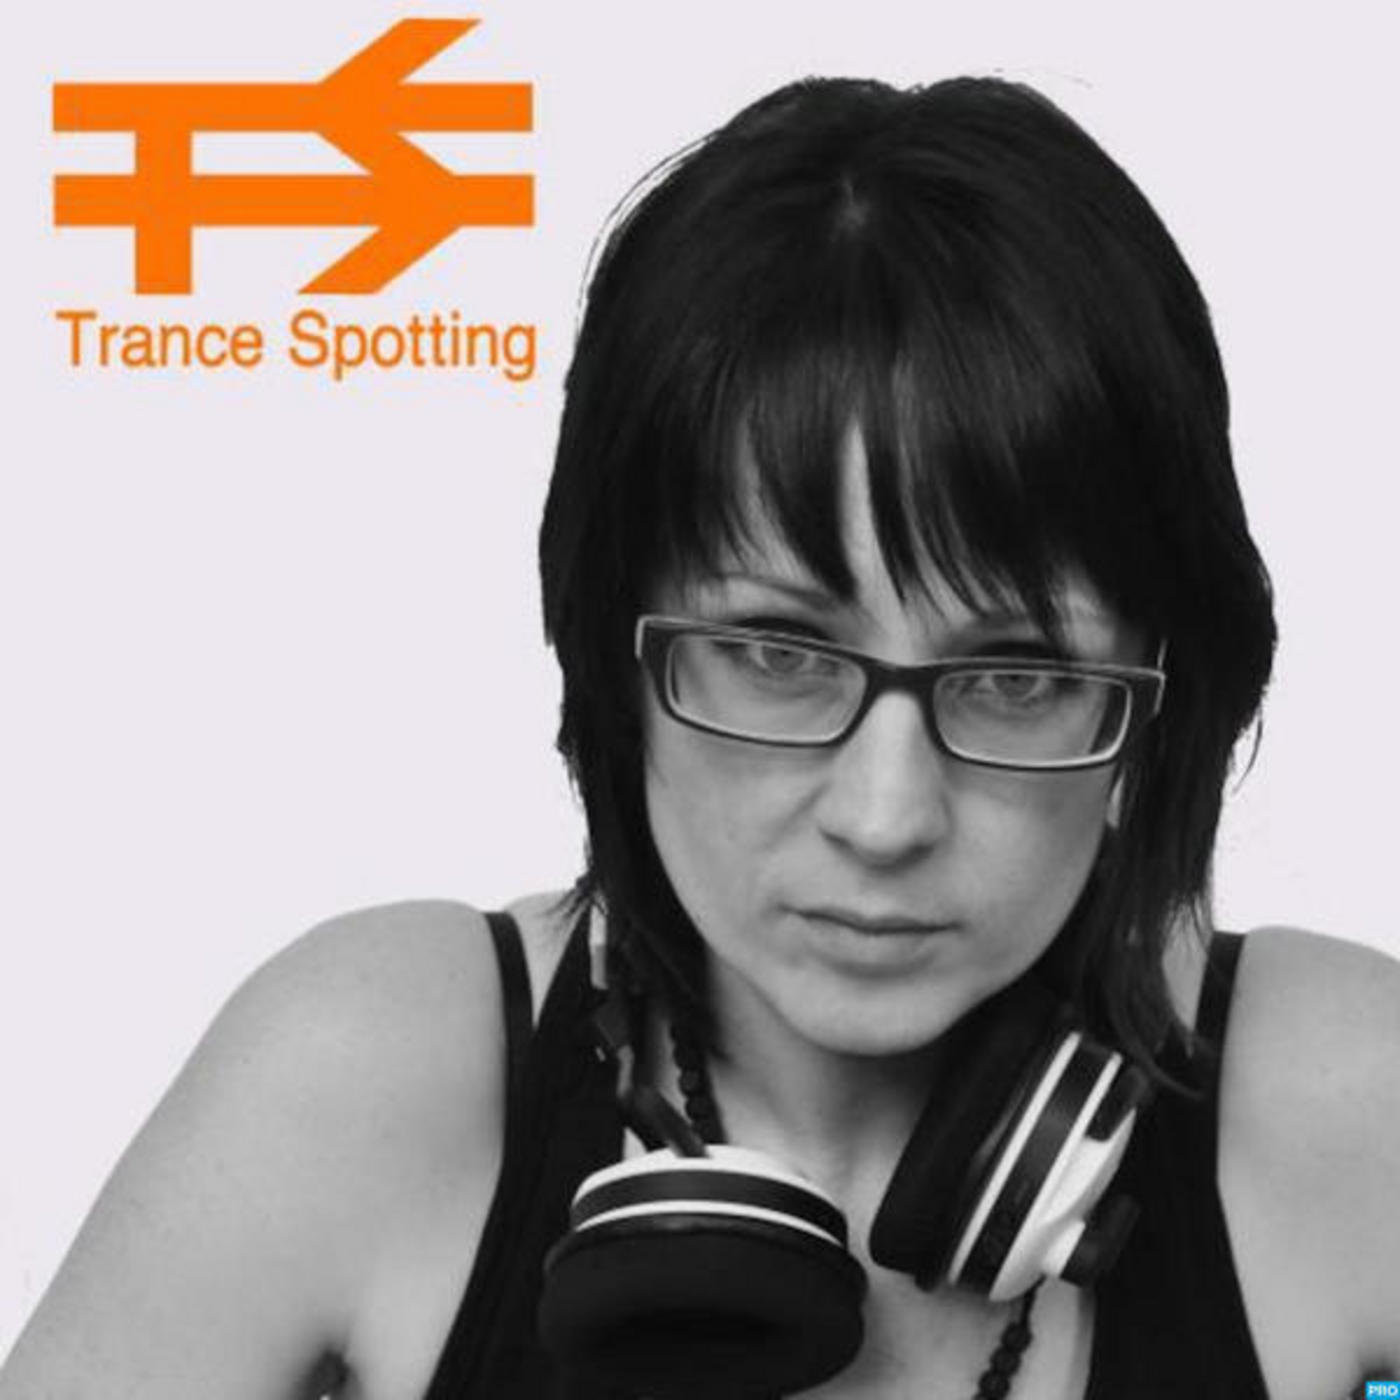 FranetiC - Ibiza Calling - Episode 30